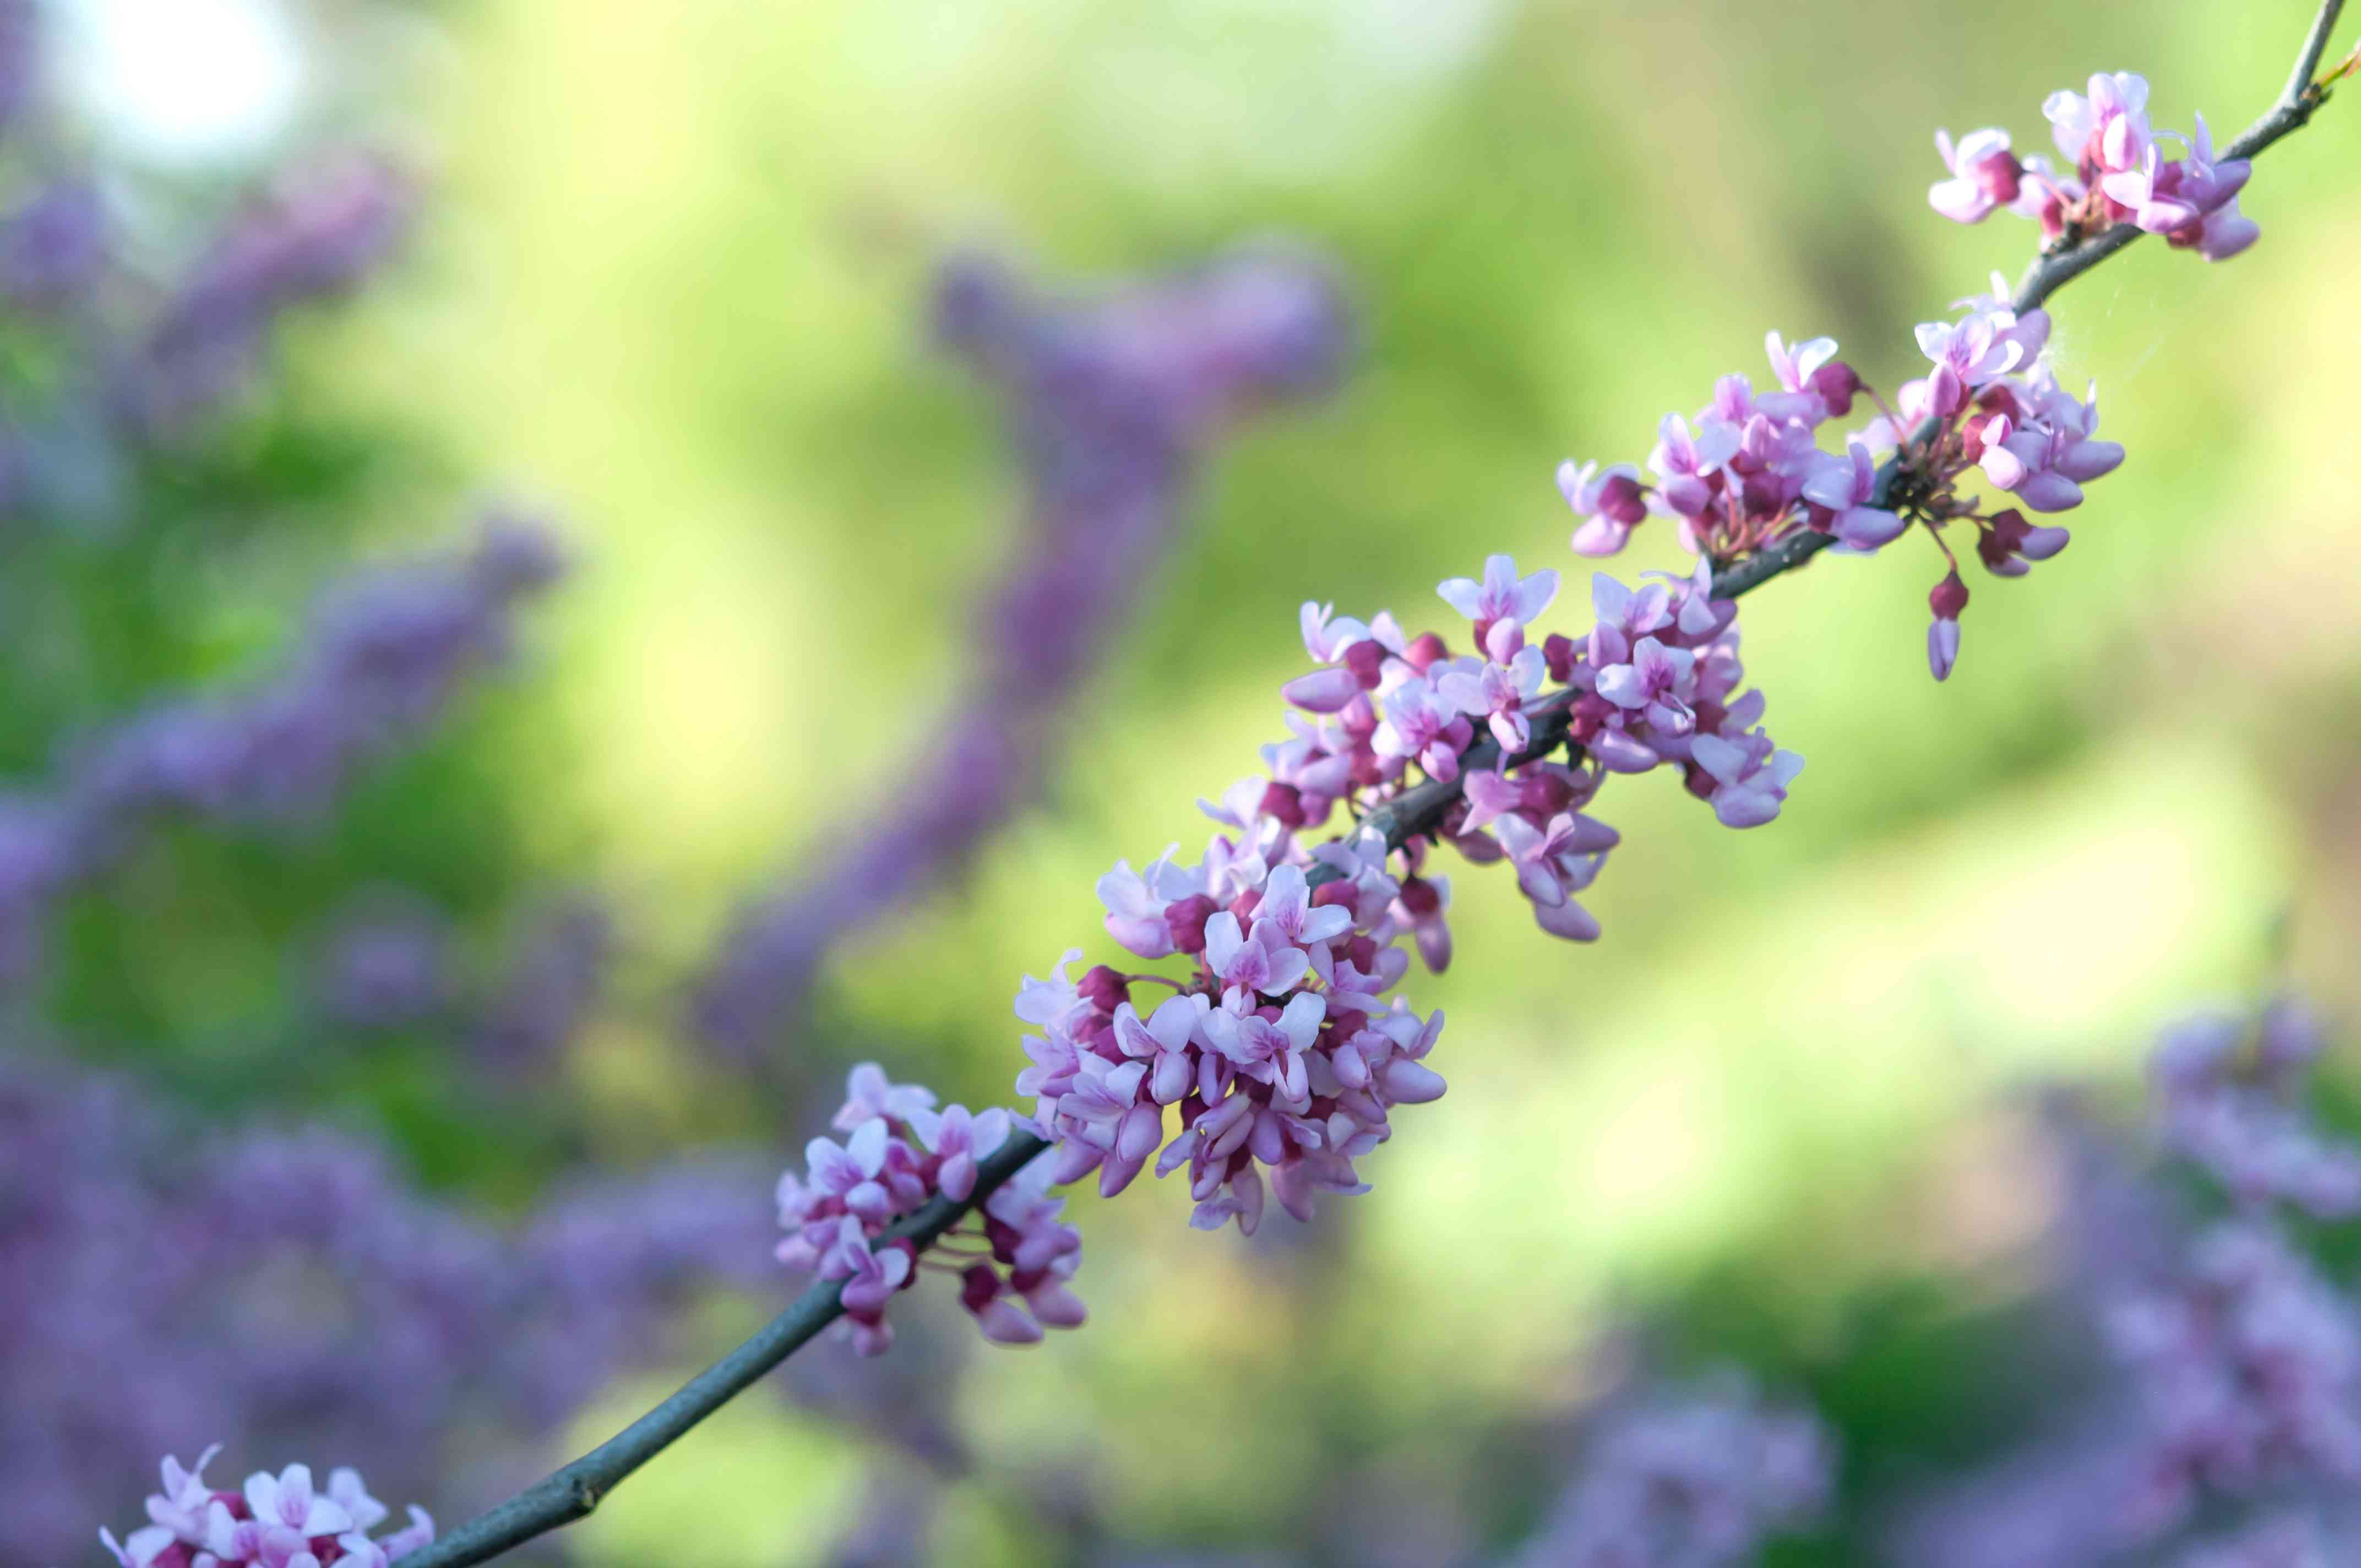 Eastern redbud tree branch with white and pink flowers in partial sunlight